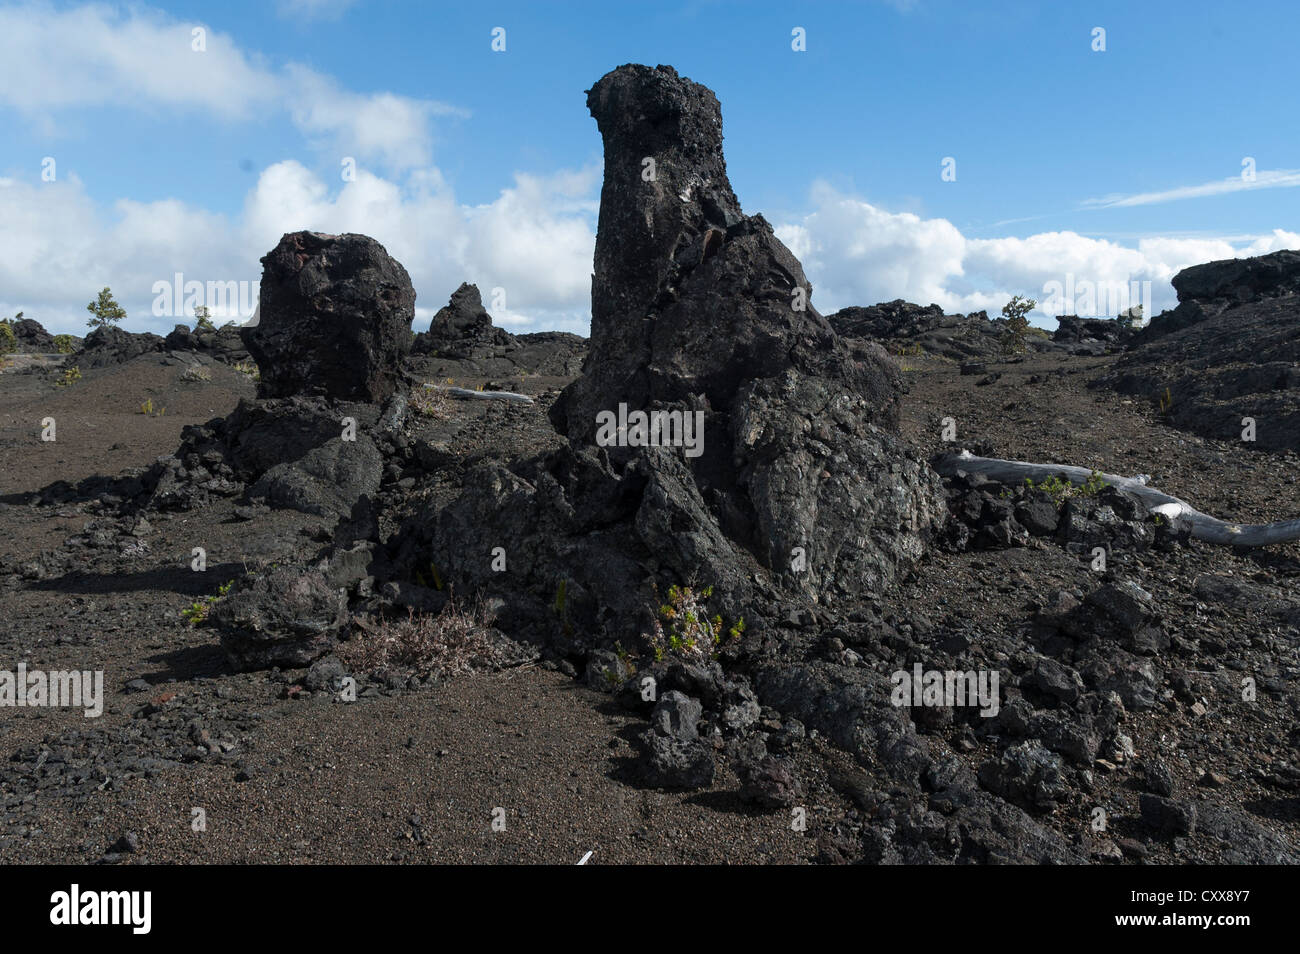 Elk284-2554 Hawaii, Volcanoes NP, lava field - Stock Image